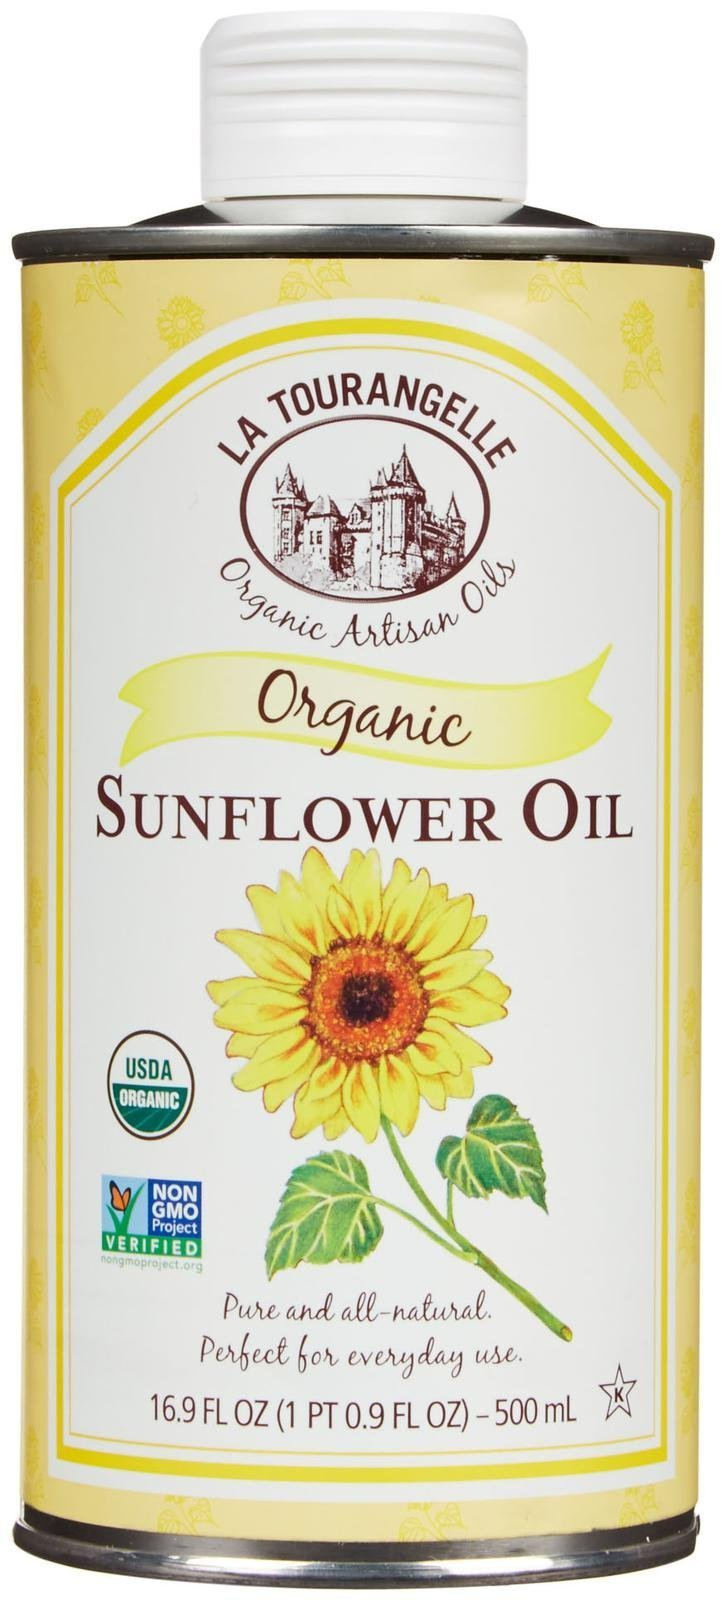 La Tourangelle Oil - 100% Organic Sunflower - 16.9 Ounces by La Tourangelle